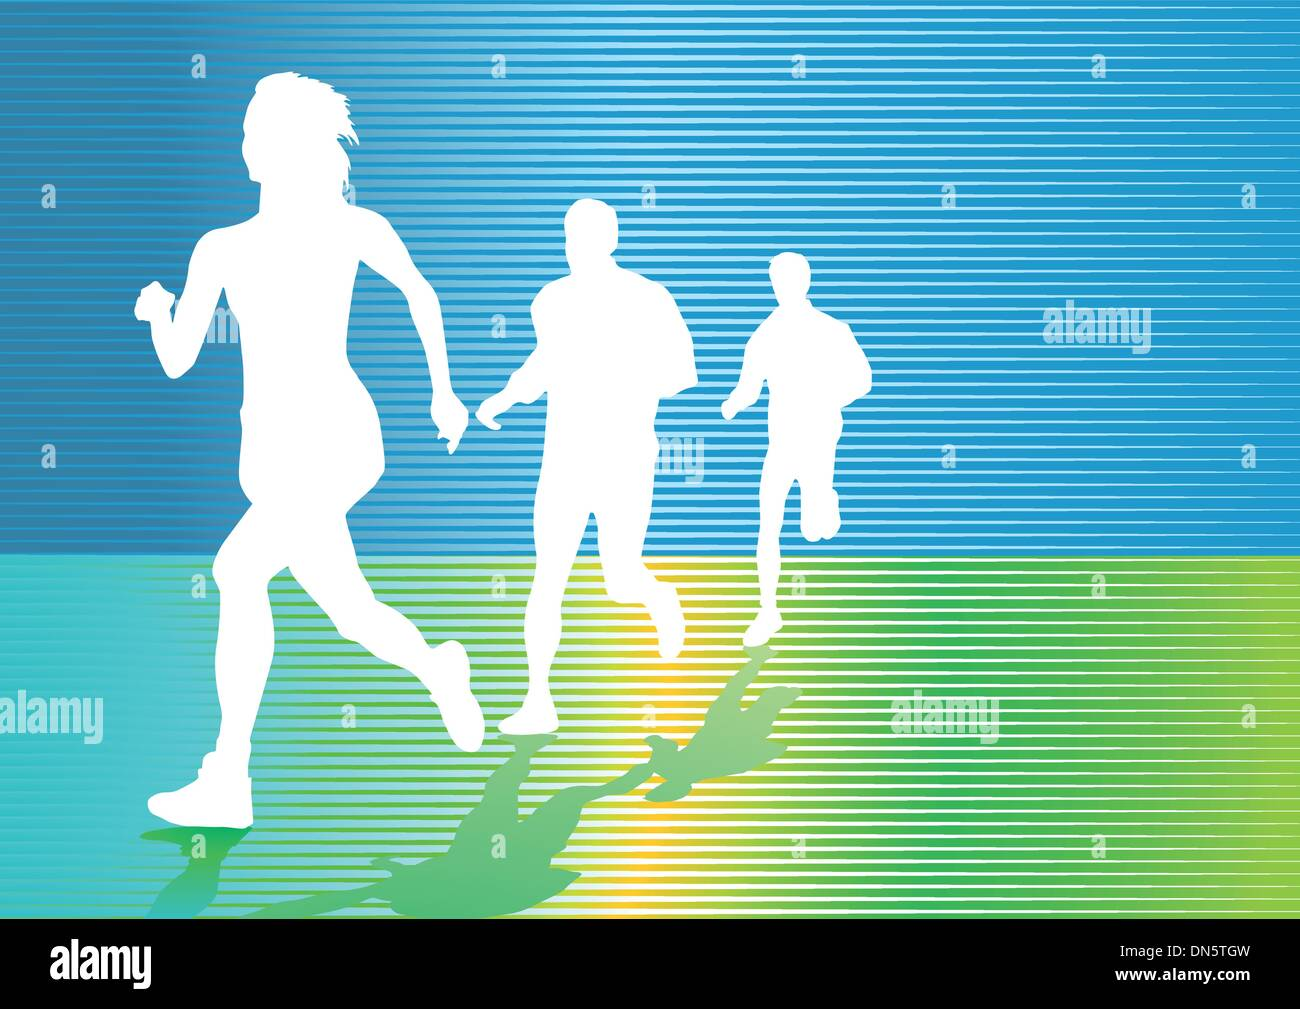 Continuous run and jogging - Stock Image